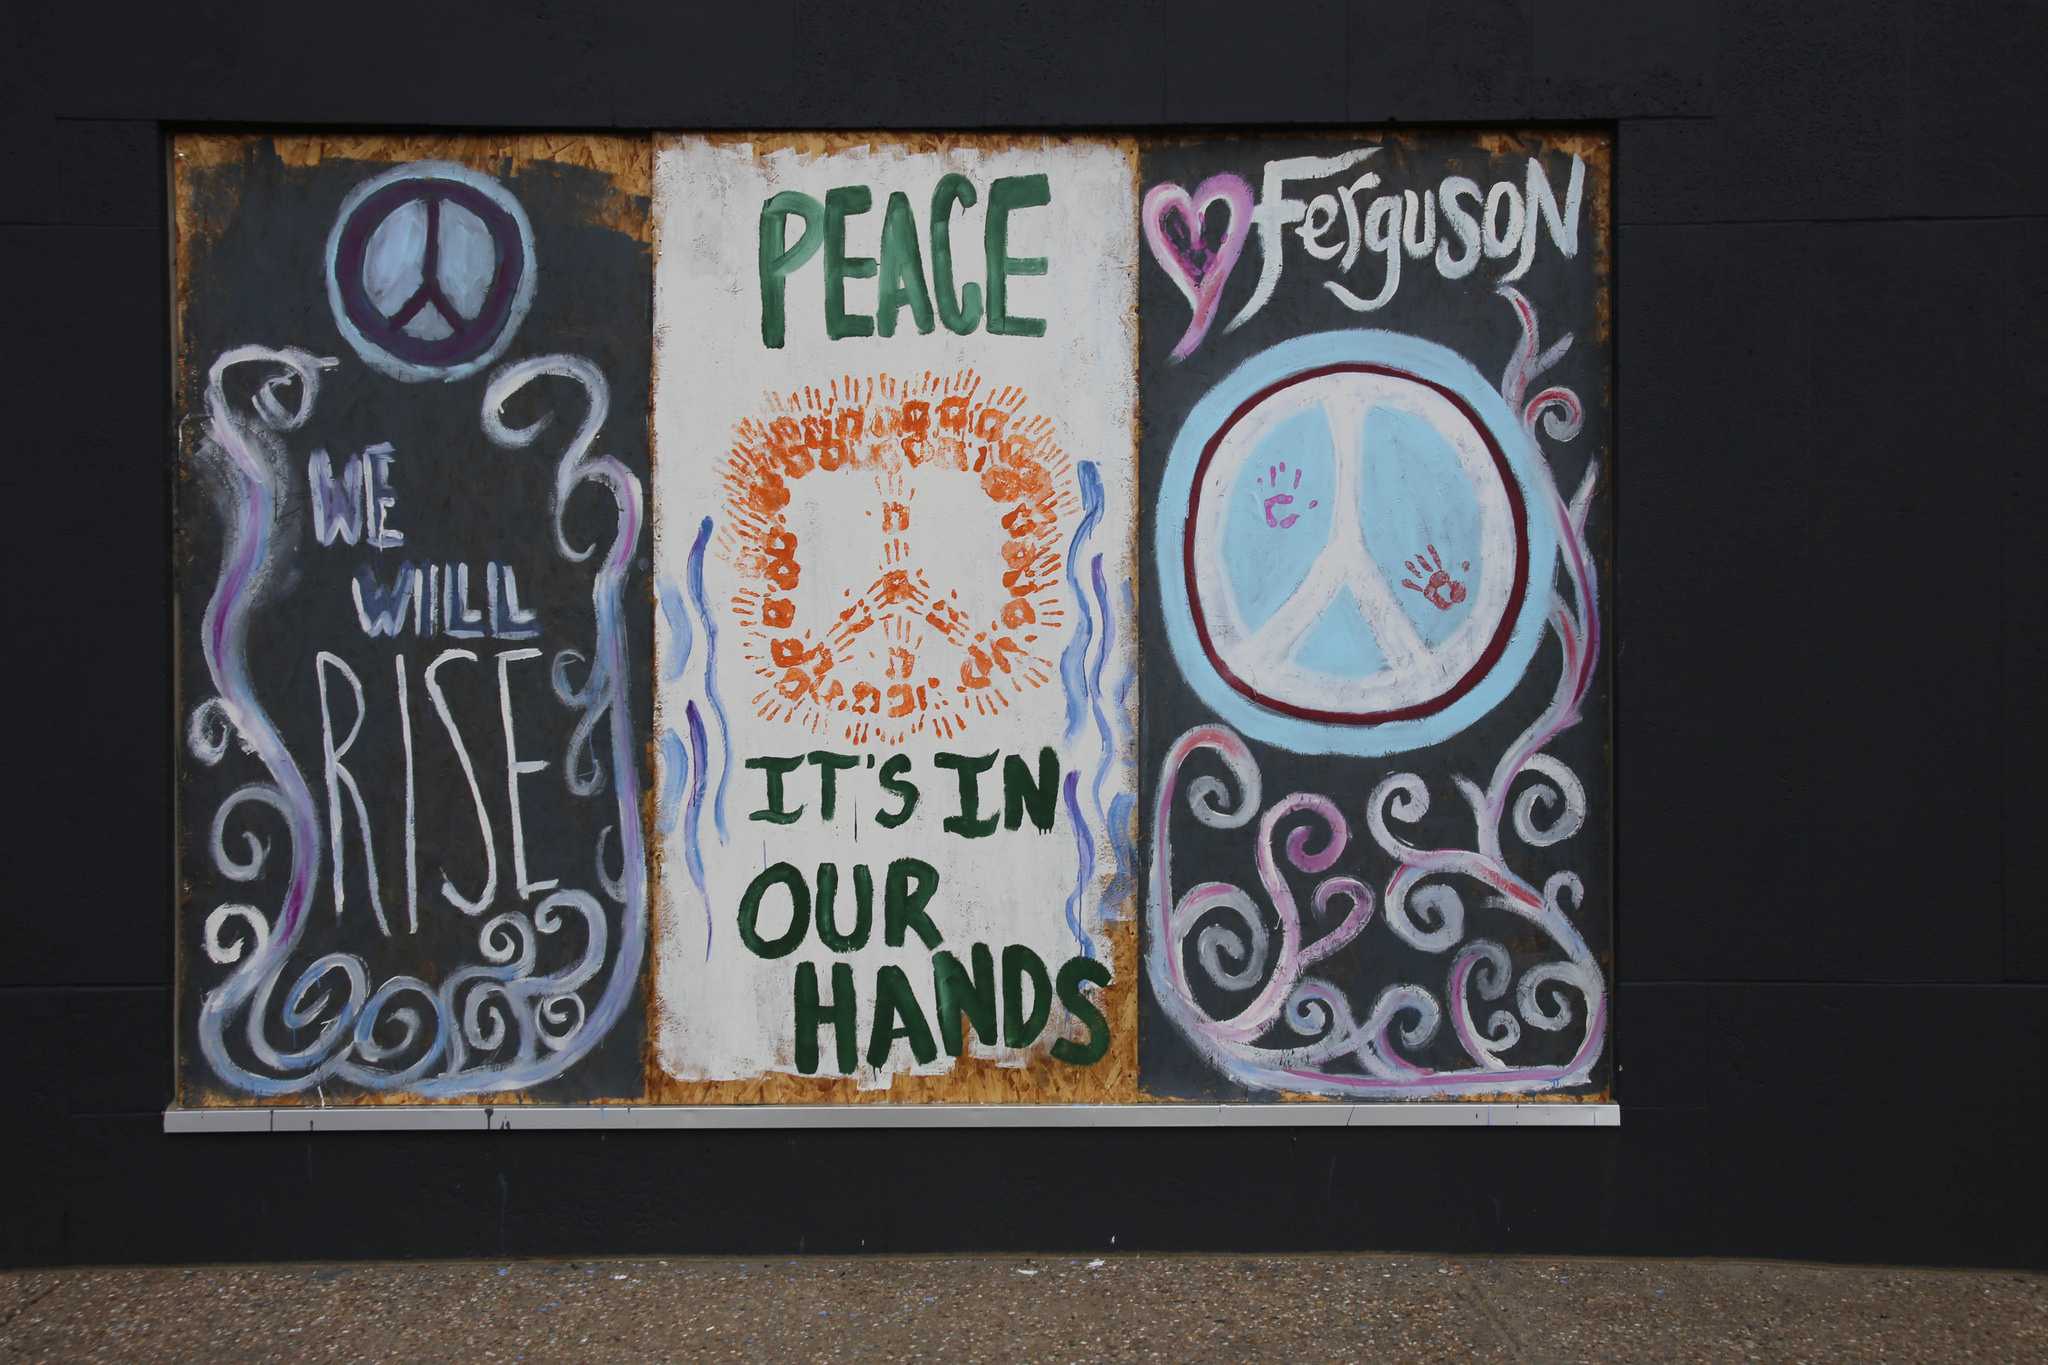 A Ferguson-themed window mural. Photo by Paul Sableman on Flickr.